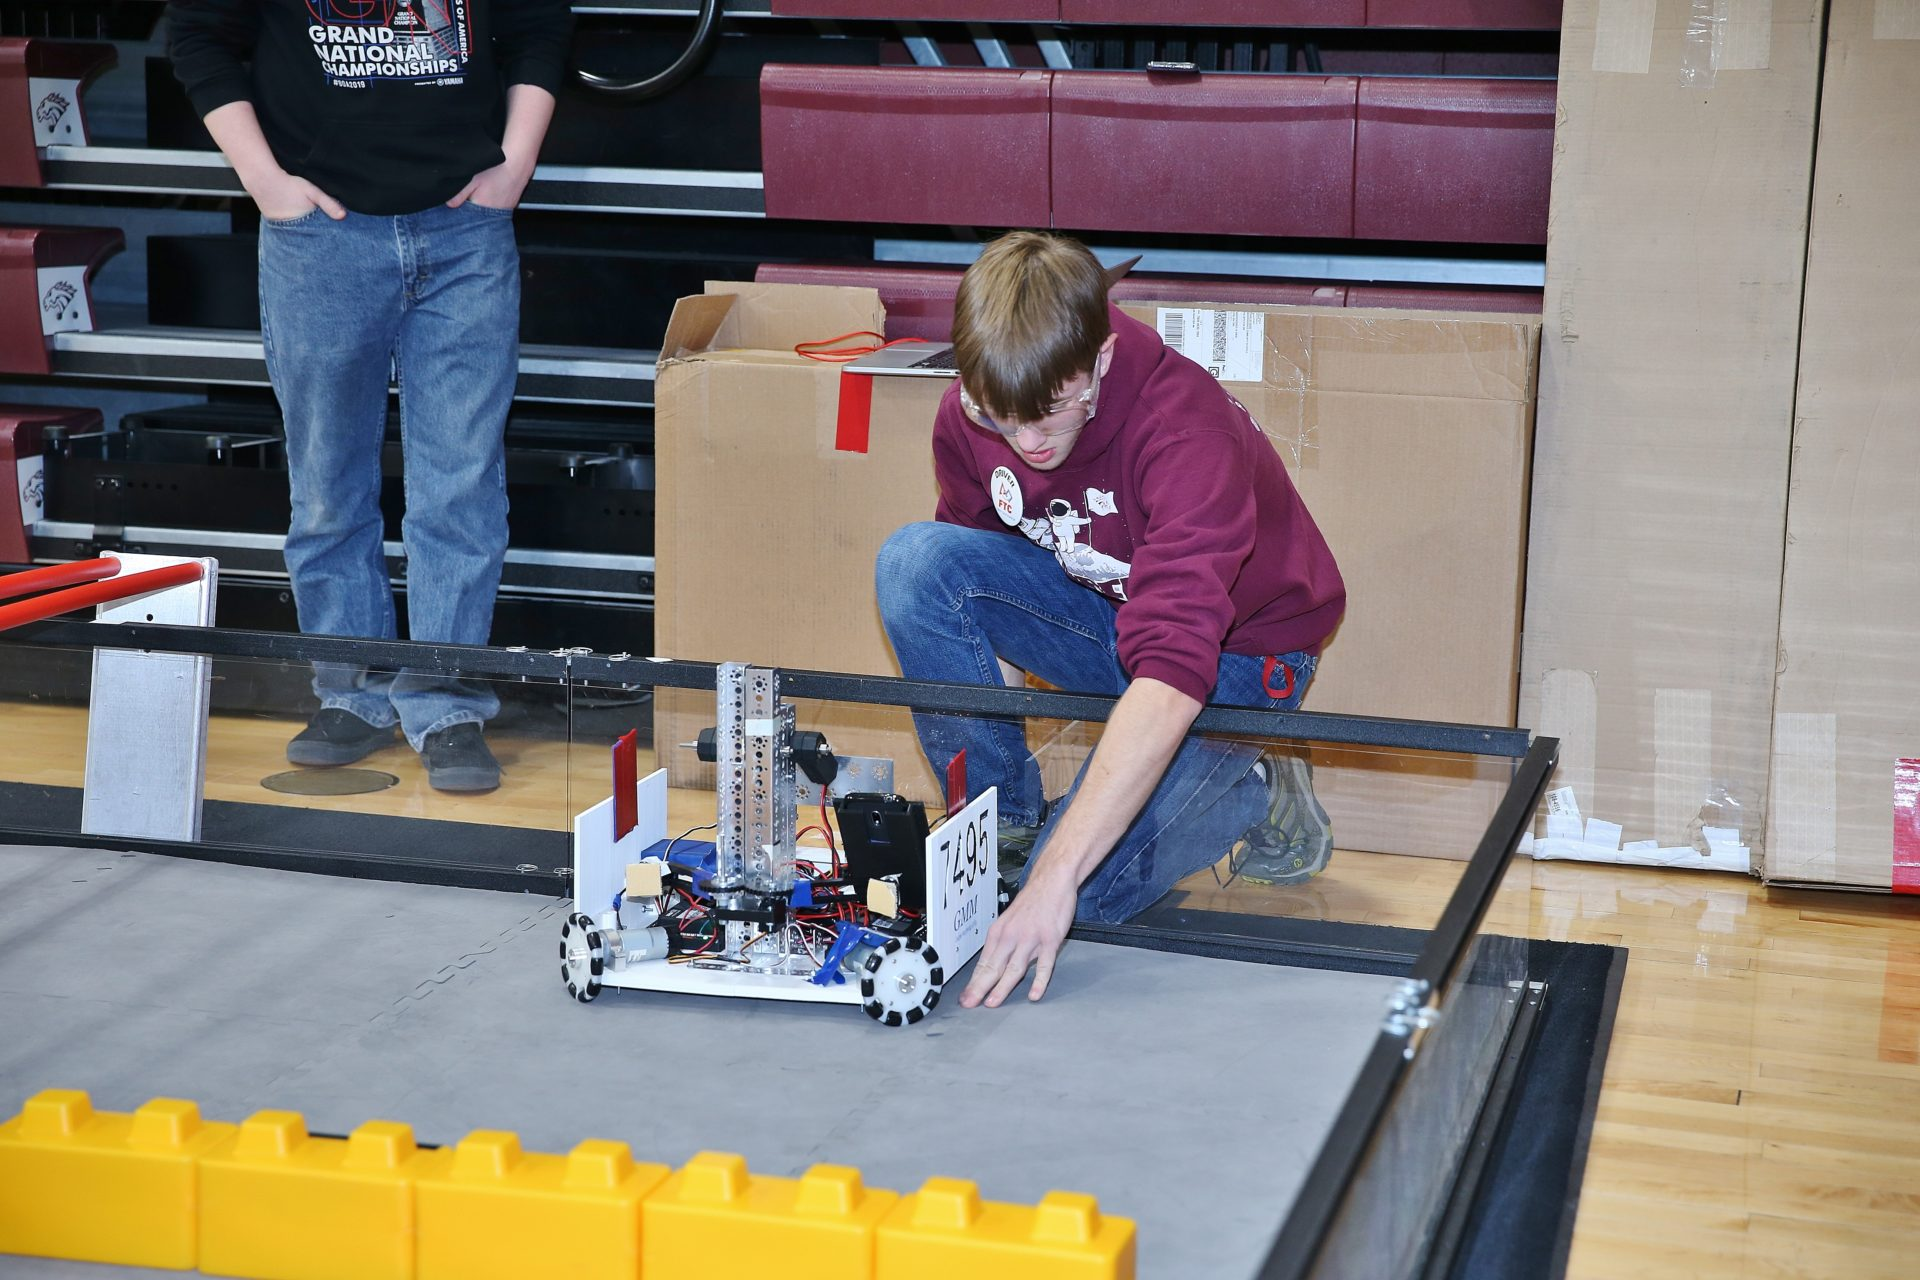 Independence student works with programmed robot